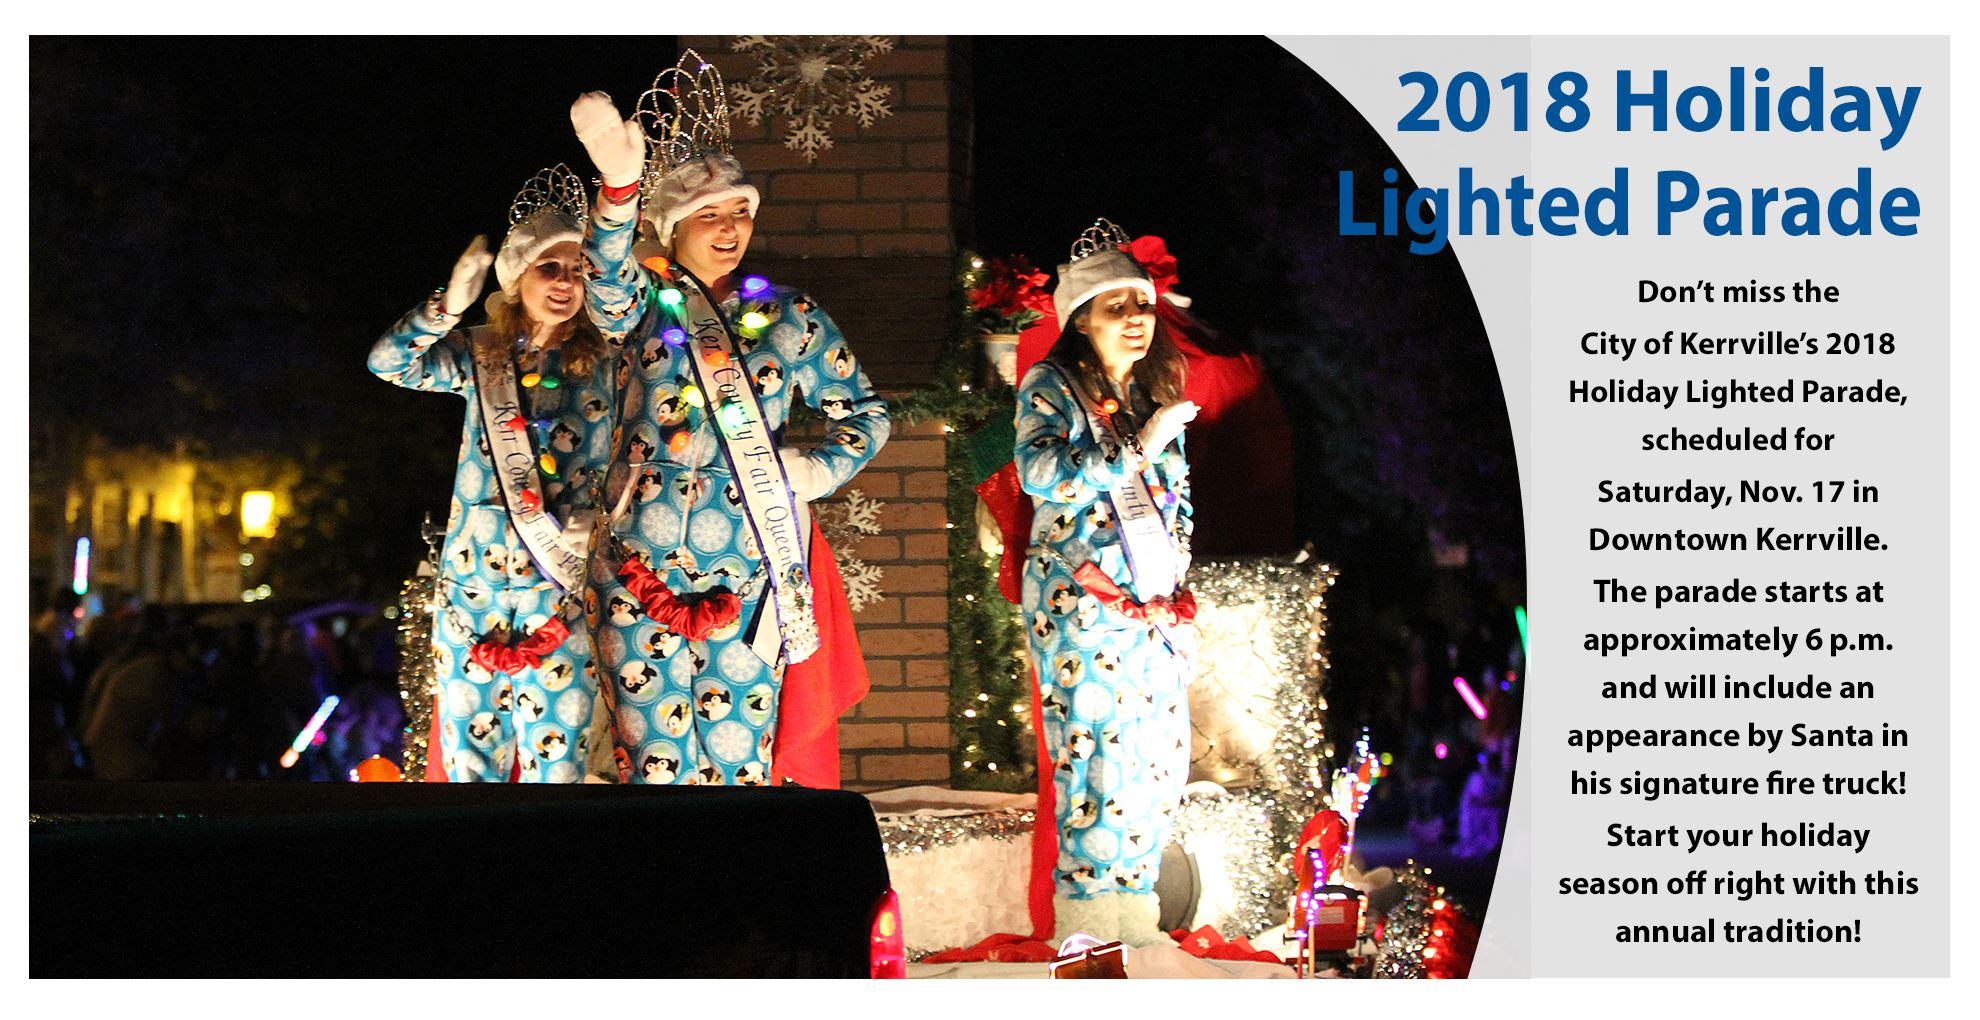 2018 Holiday Lighted Parade